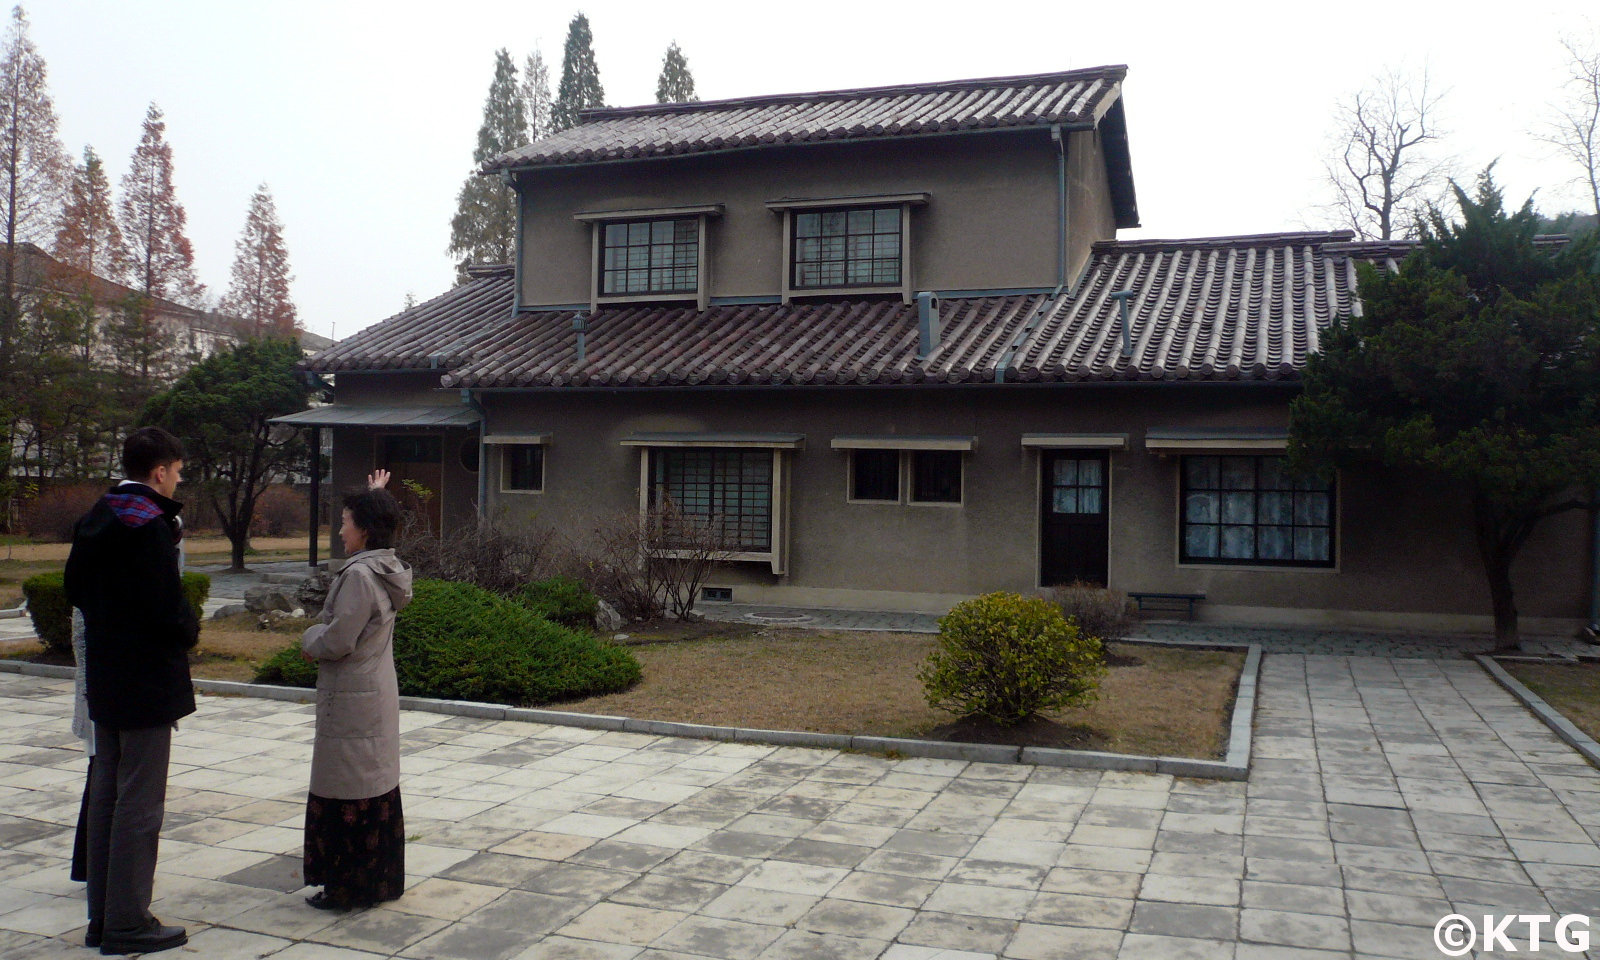 Replica of the Tongyang guesthouse at the train station revolutionary site in Wonsan, DPRK. Picture taken by KTG Tours